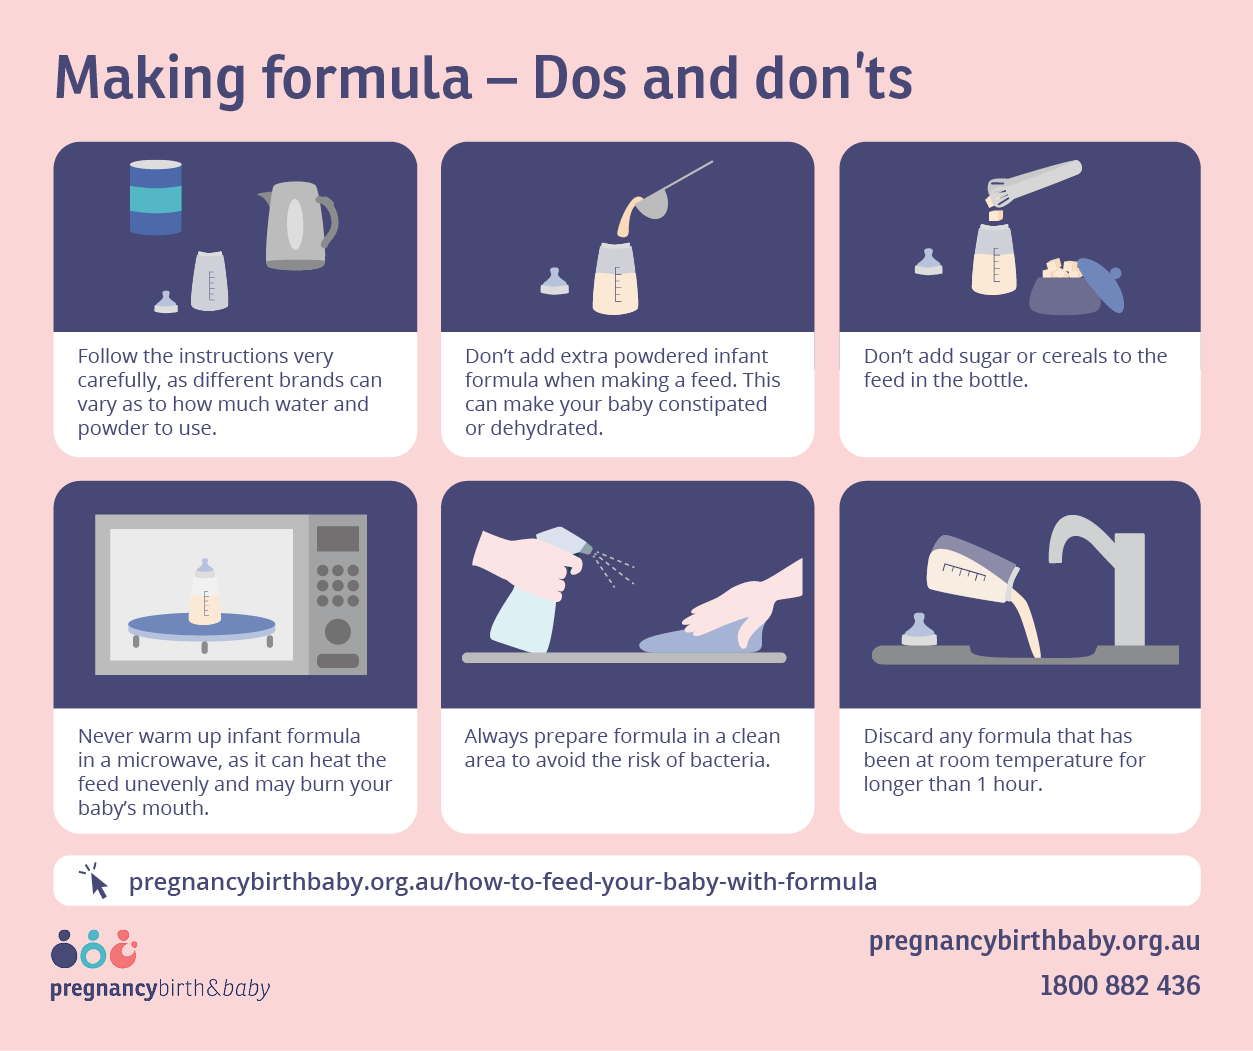 Making formula – dos and don'ts - infographic